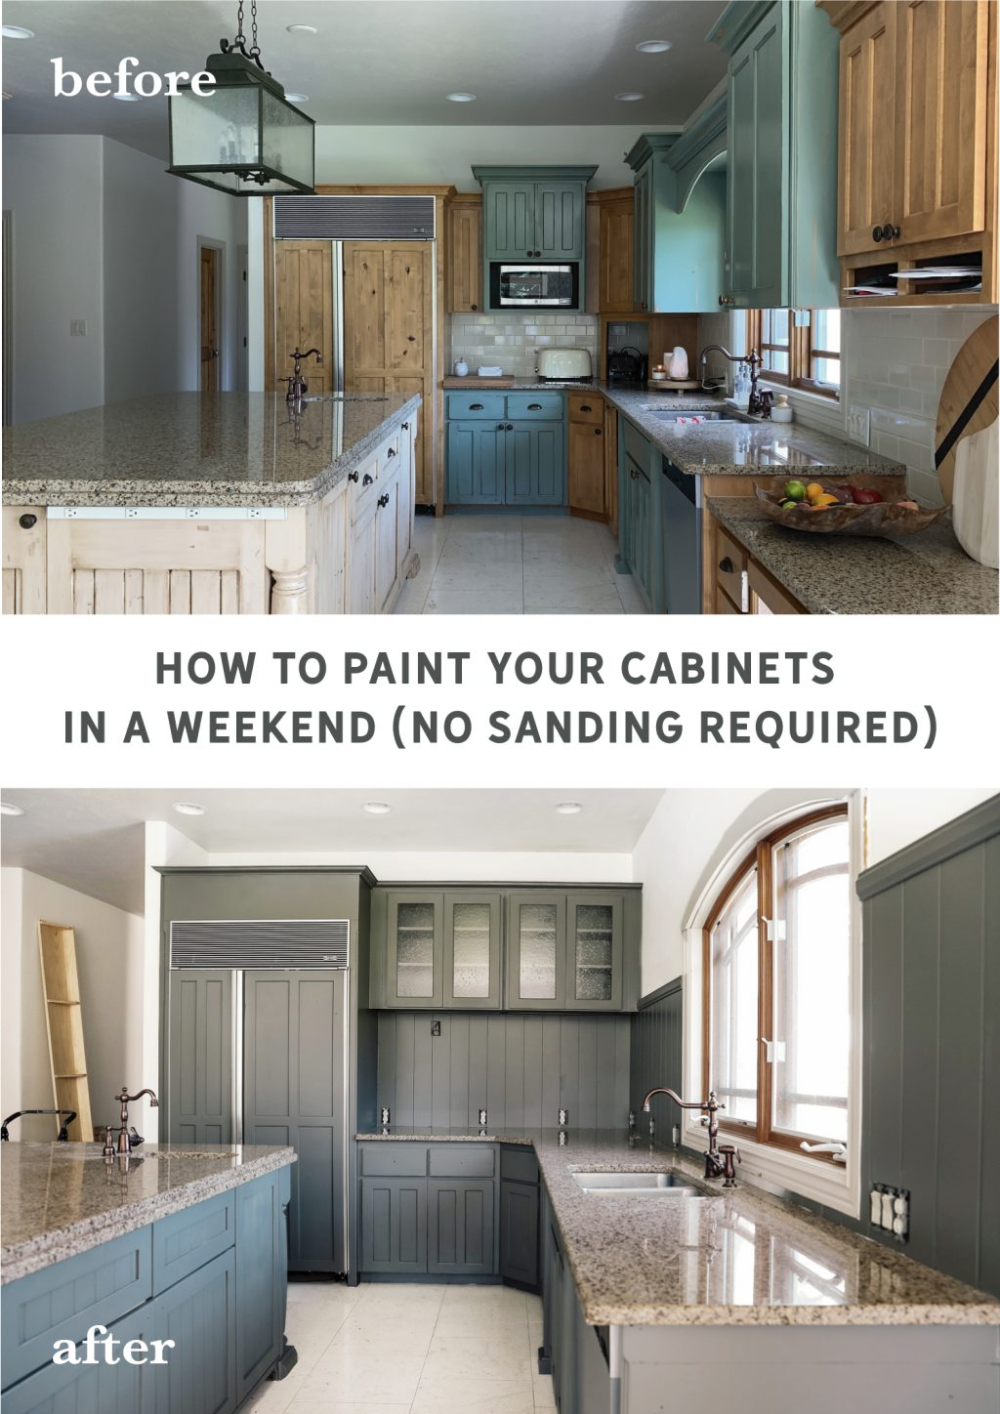 How To Paint Your Cabinets In A Weekend Without Sanding Them Kitchen Decor Inspiration Boho Kitchen Kitchen Paint